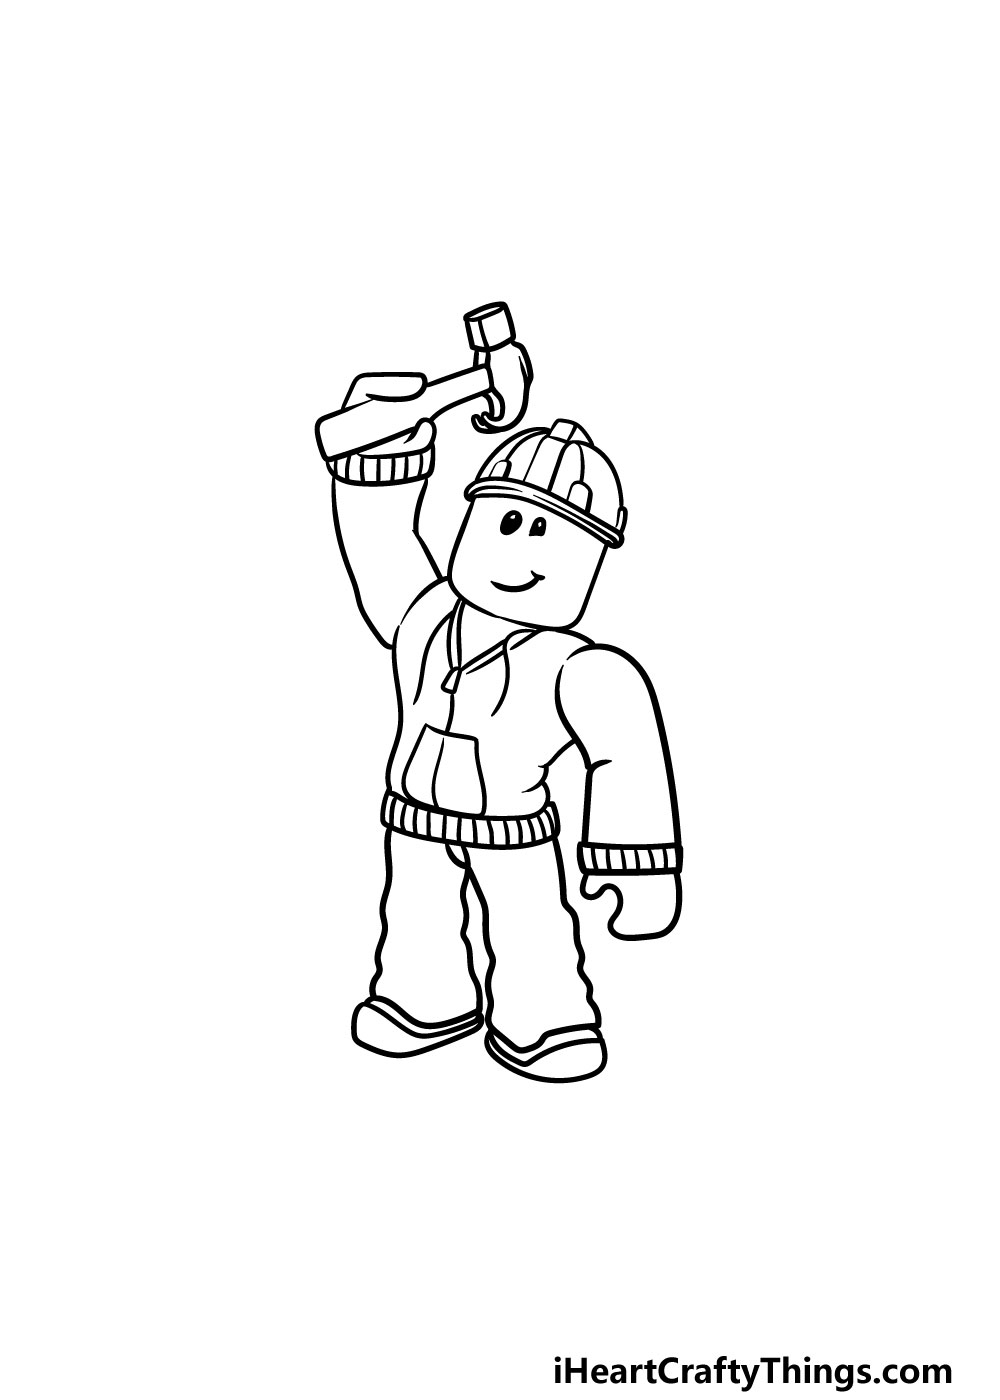 drawing roblox step 5